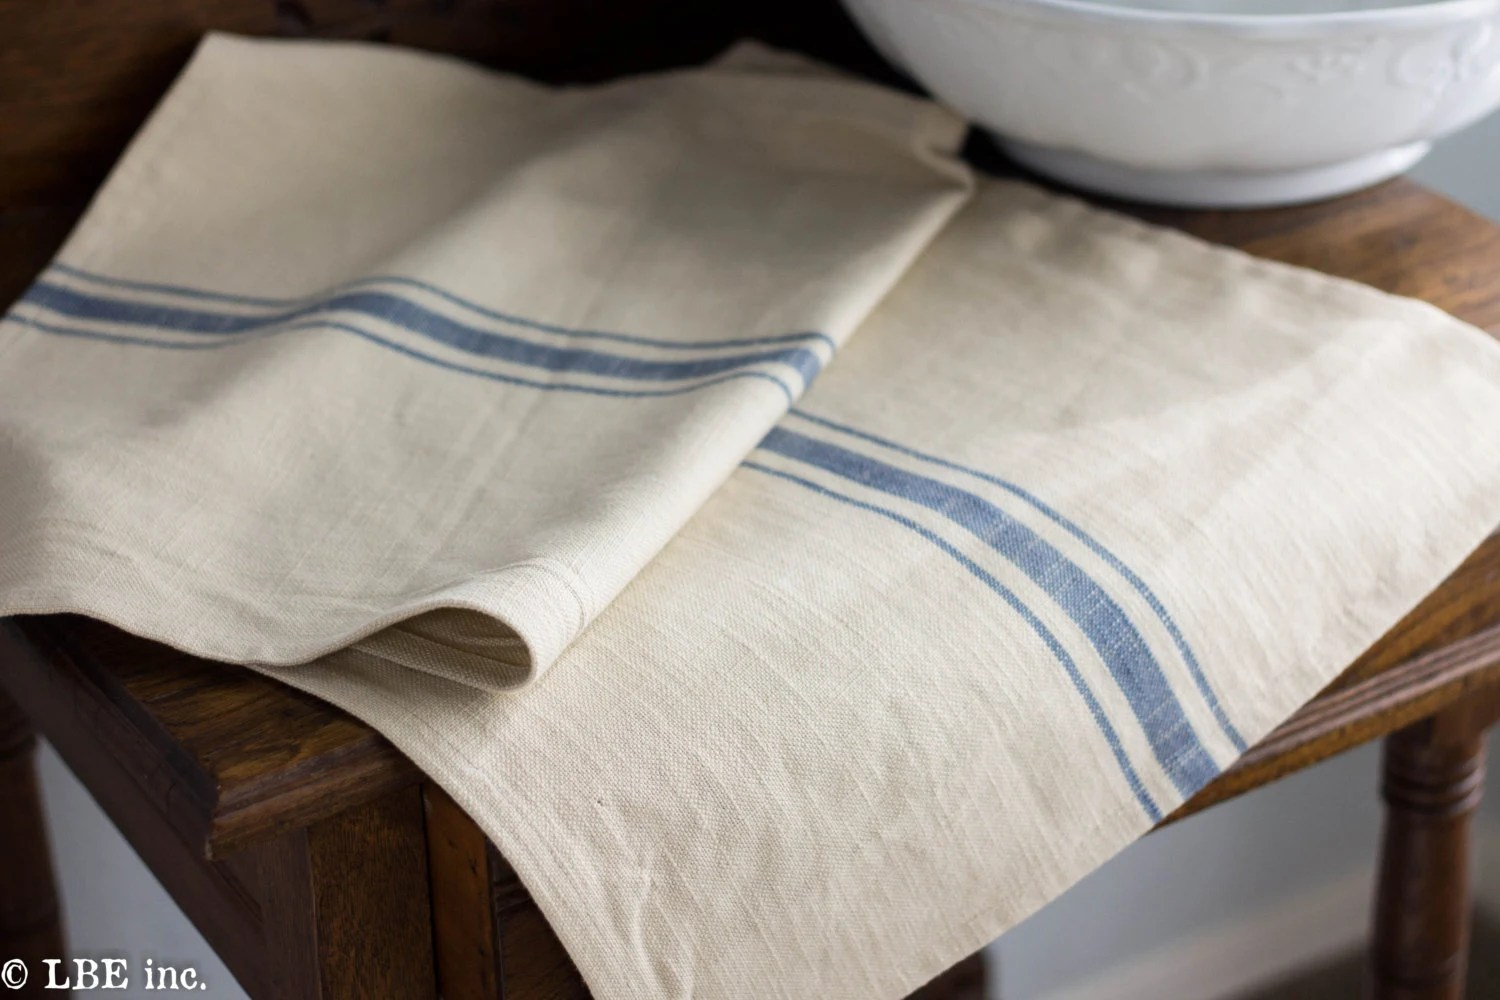 Farmhouse Style Table Runners Farmhouse Table Runner Blue And Cream Approx 34 X 16 Inches